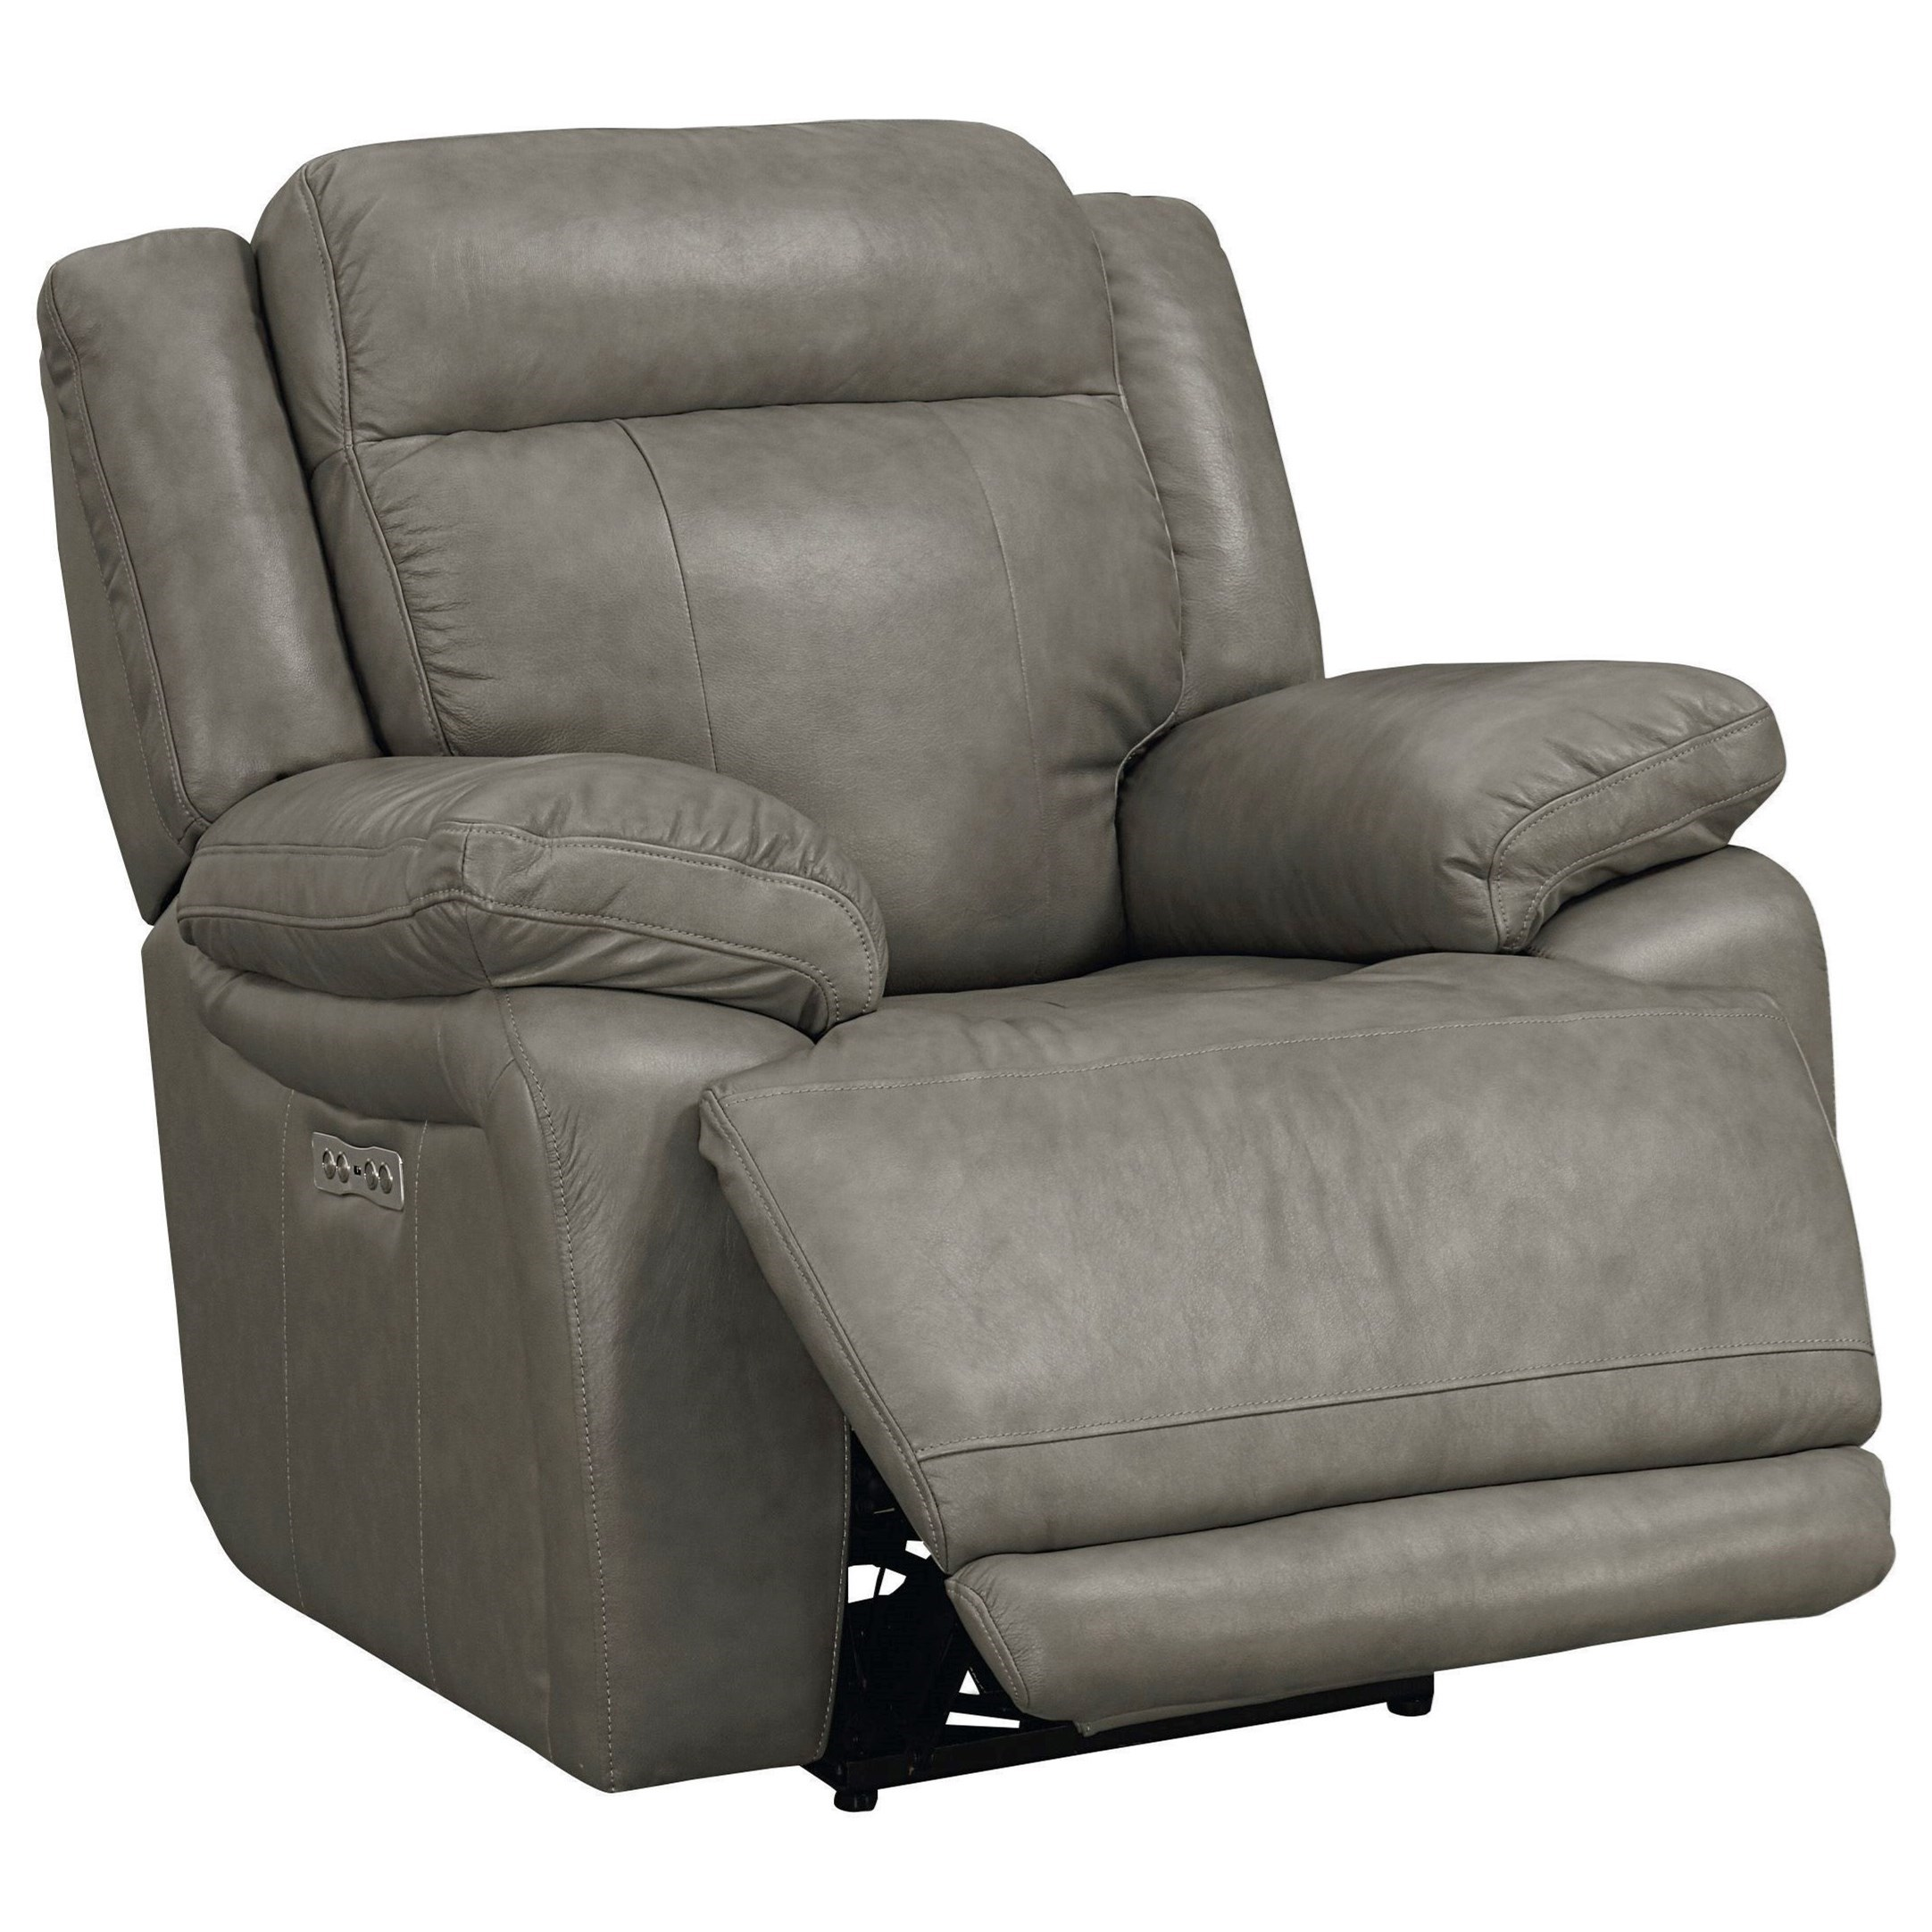 pop up recliner chairs french country dining chair bassett evo 3706 power headrest wall saver